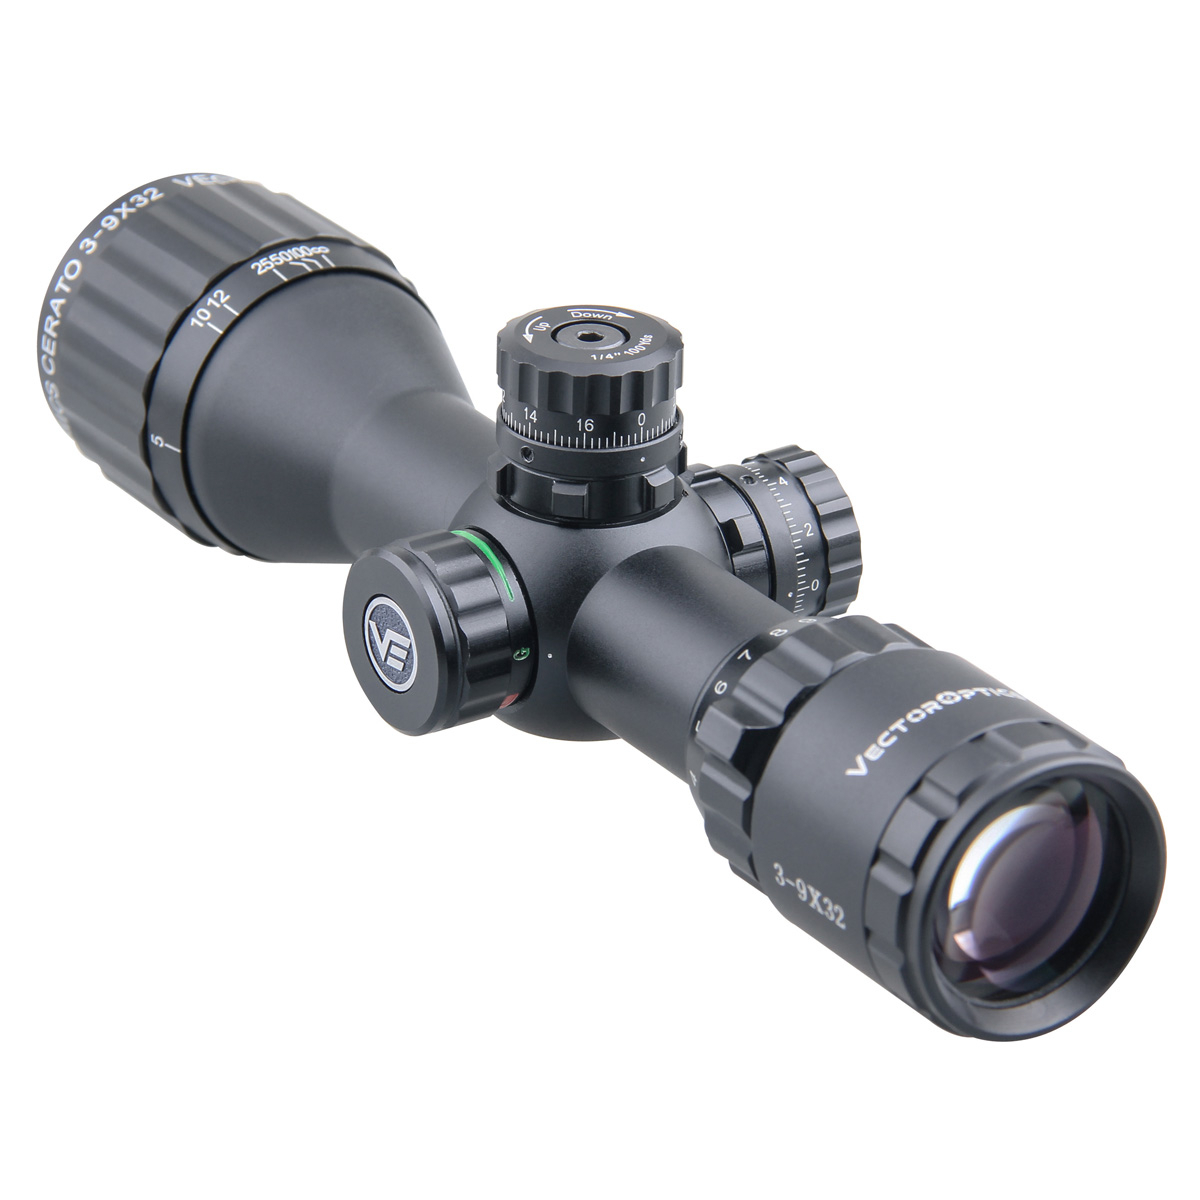 Image 3 - Vector Optics Cerato 3 9x32 Hunting Riflescope 1/4 MOA 25.4mm  Monotube Tactical Sniper Scope Ultra compact fit for .308 win  .338Riflescopes